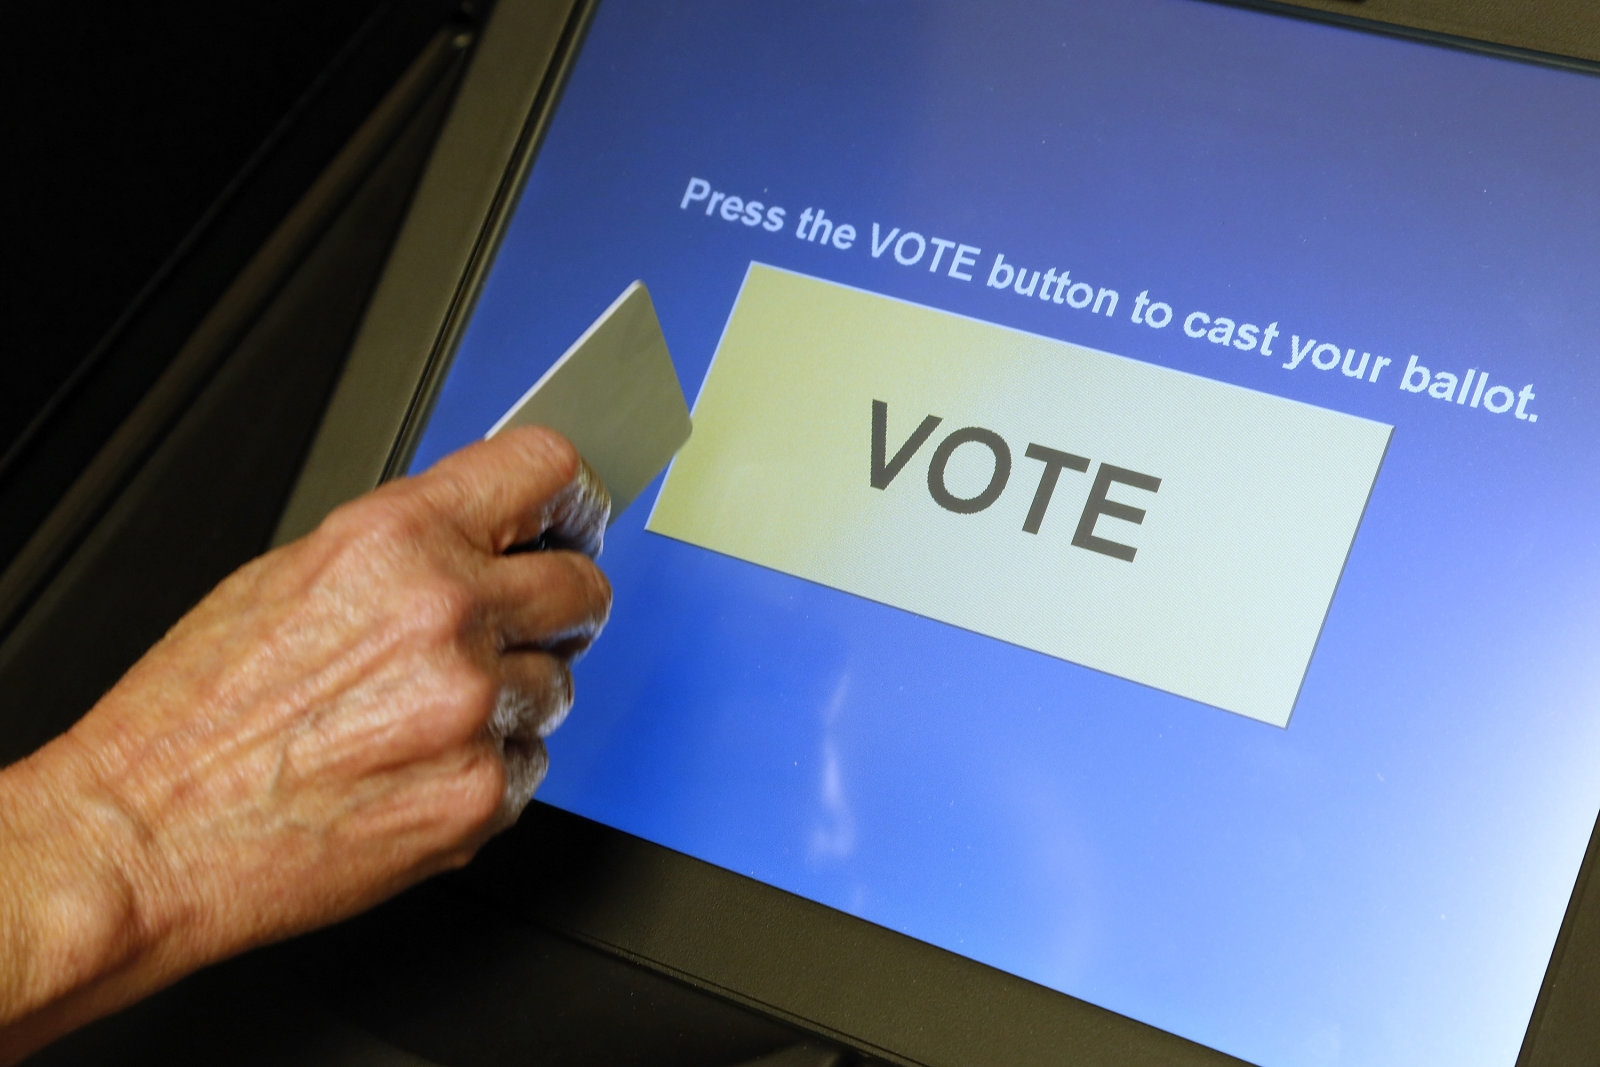 Virginia to replace voting machines over hacking concerns   DeviceDaily.com